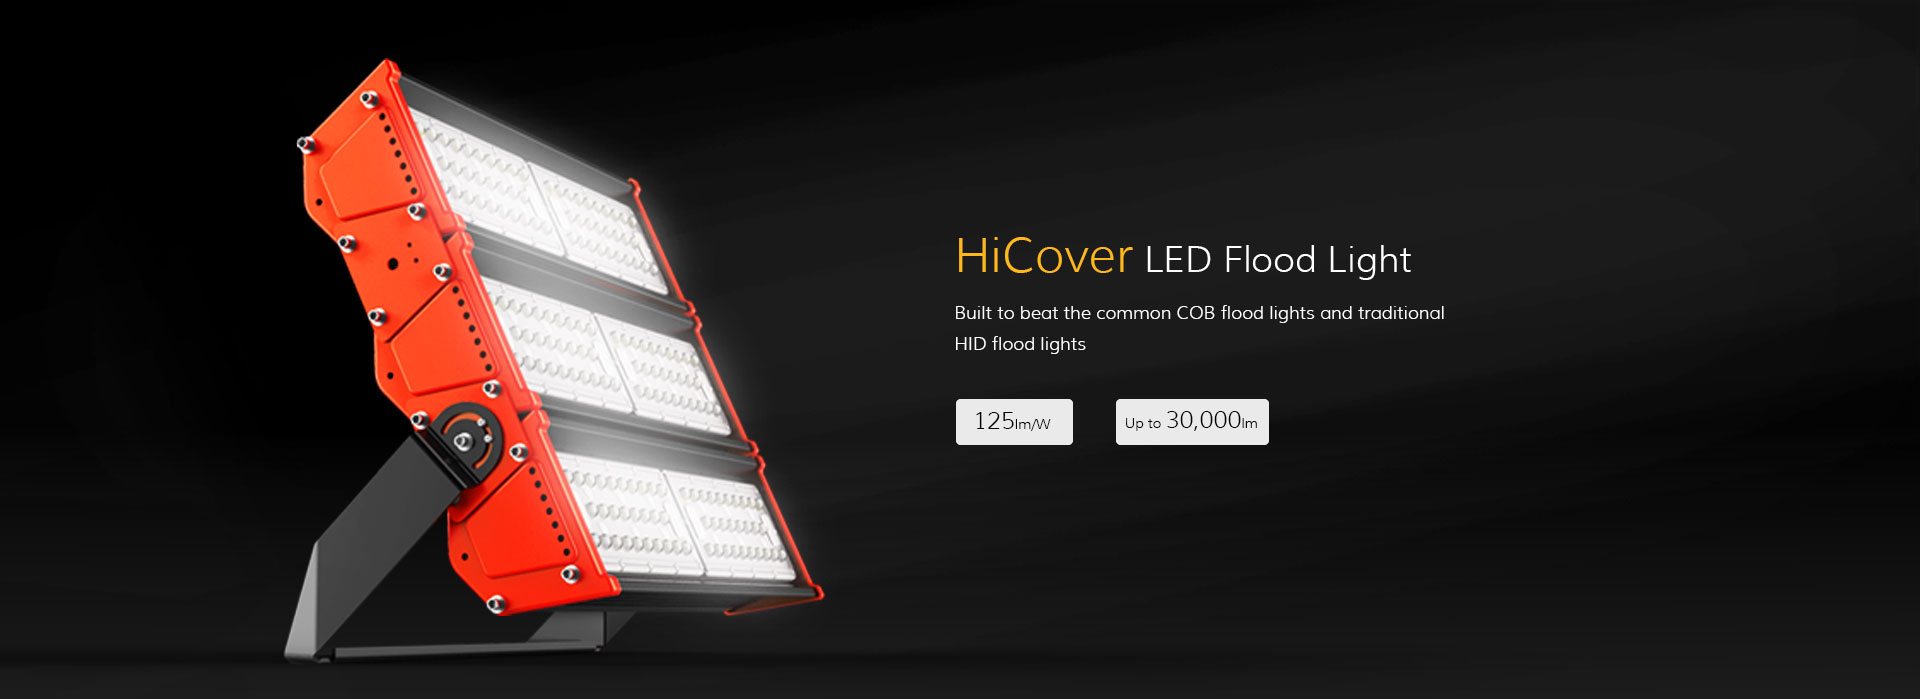 HiCover LED Flood Light